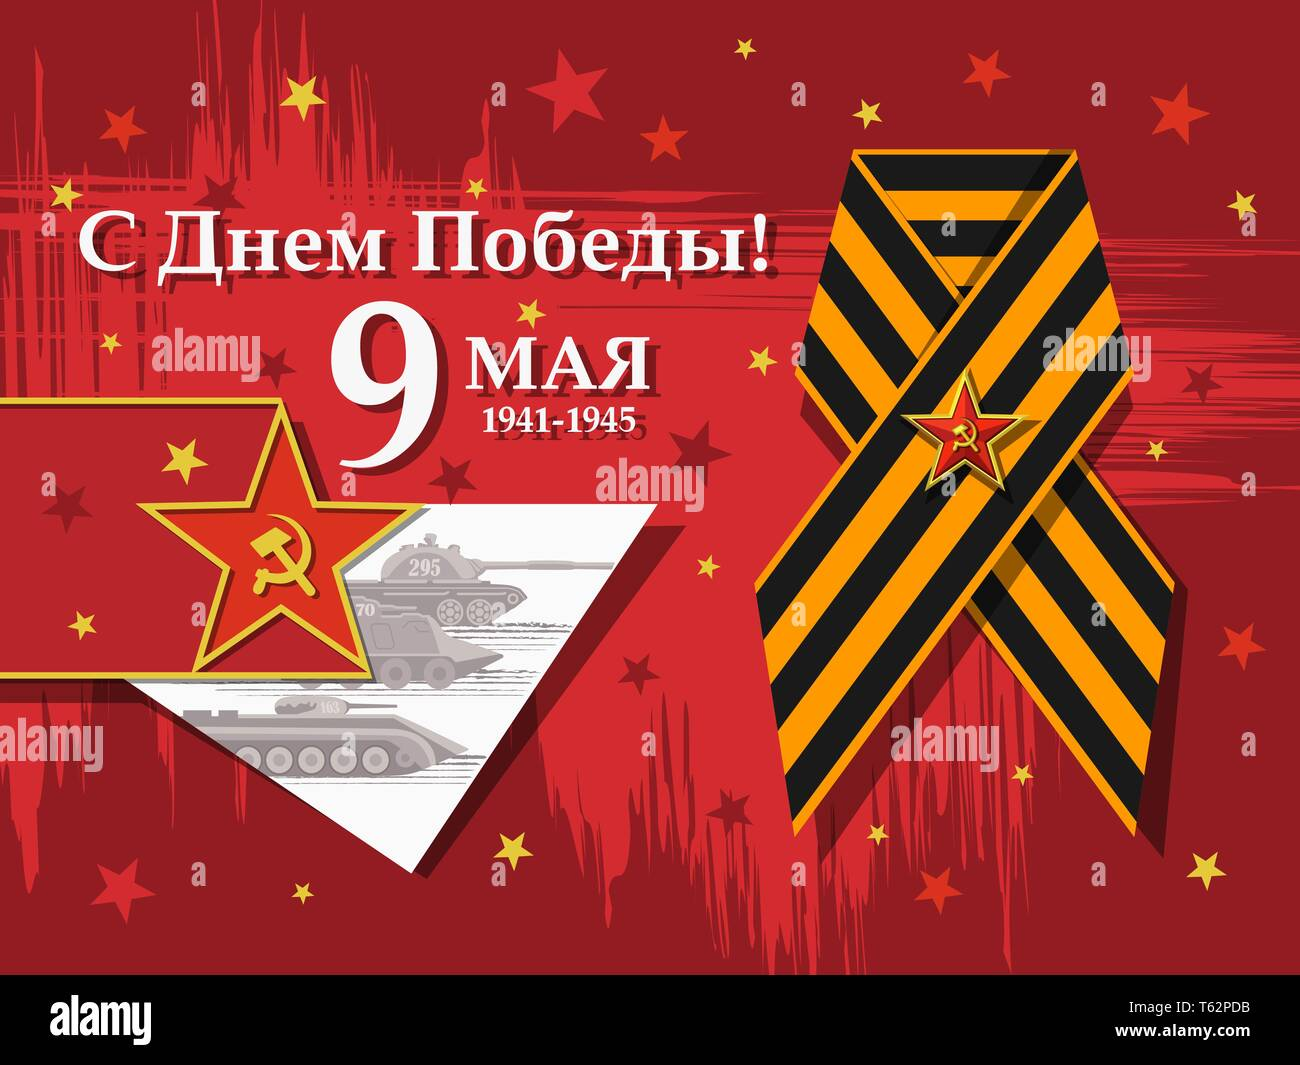 Day of Victory over fascism in the great Patriotic War. - Stock Vector